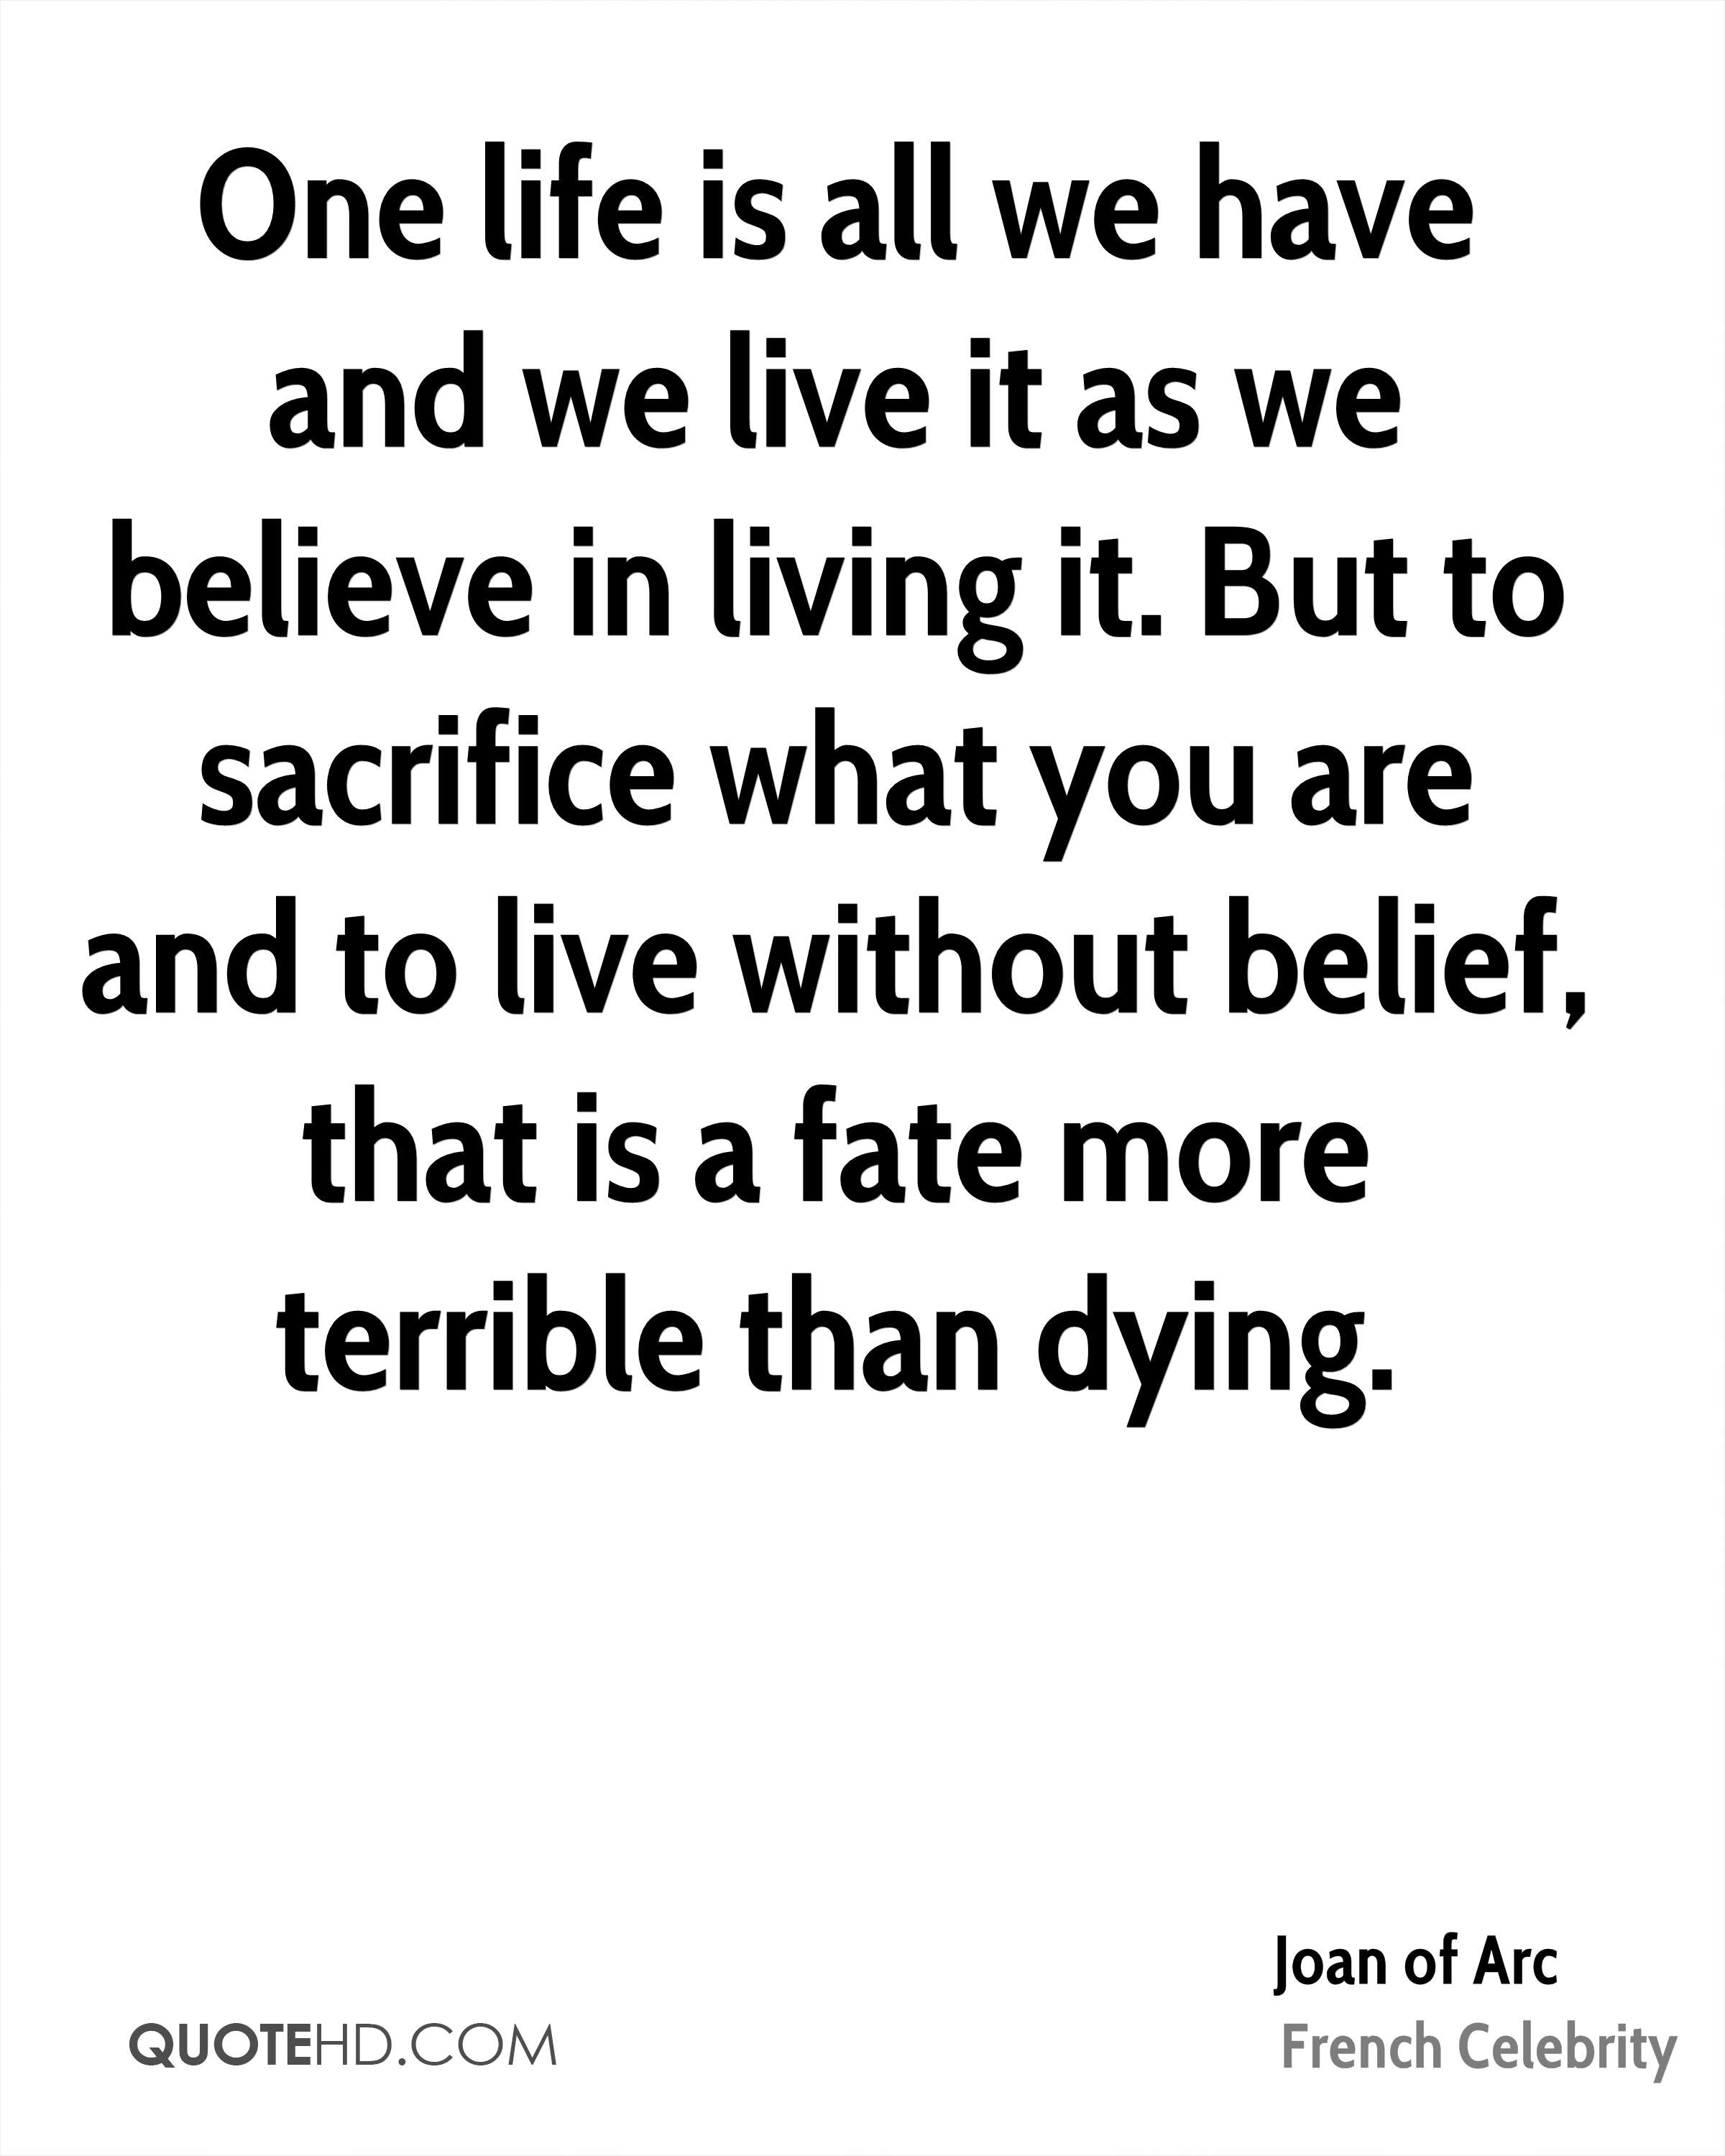 One life is all we have and we live it as we believe in living it. But to sacrifice what you are and to live without belief, that is a fate more terrible than dying.